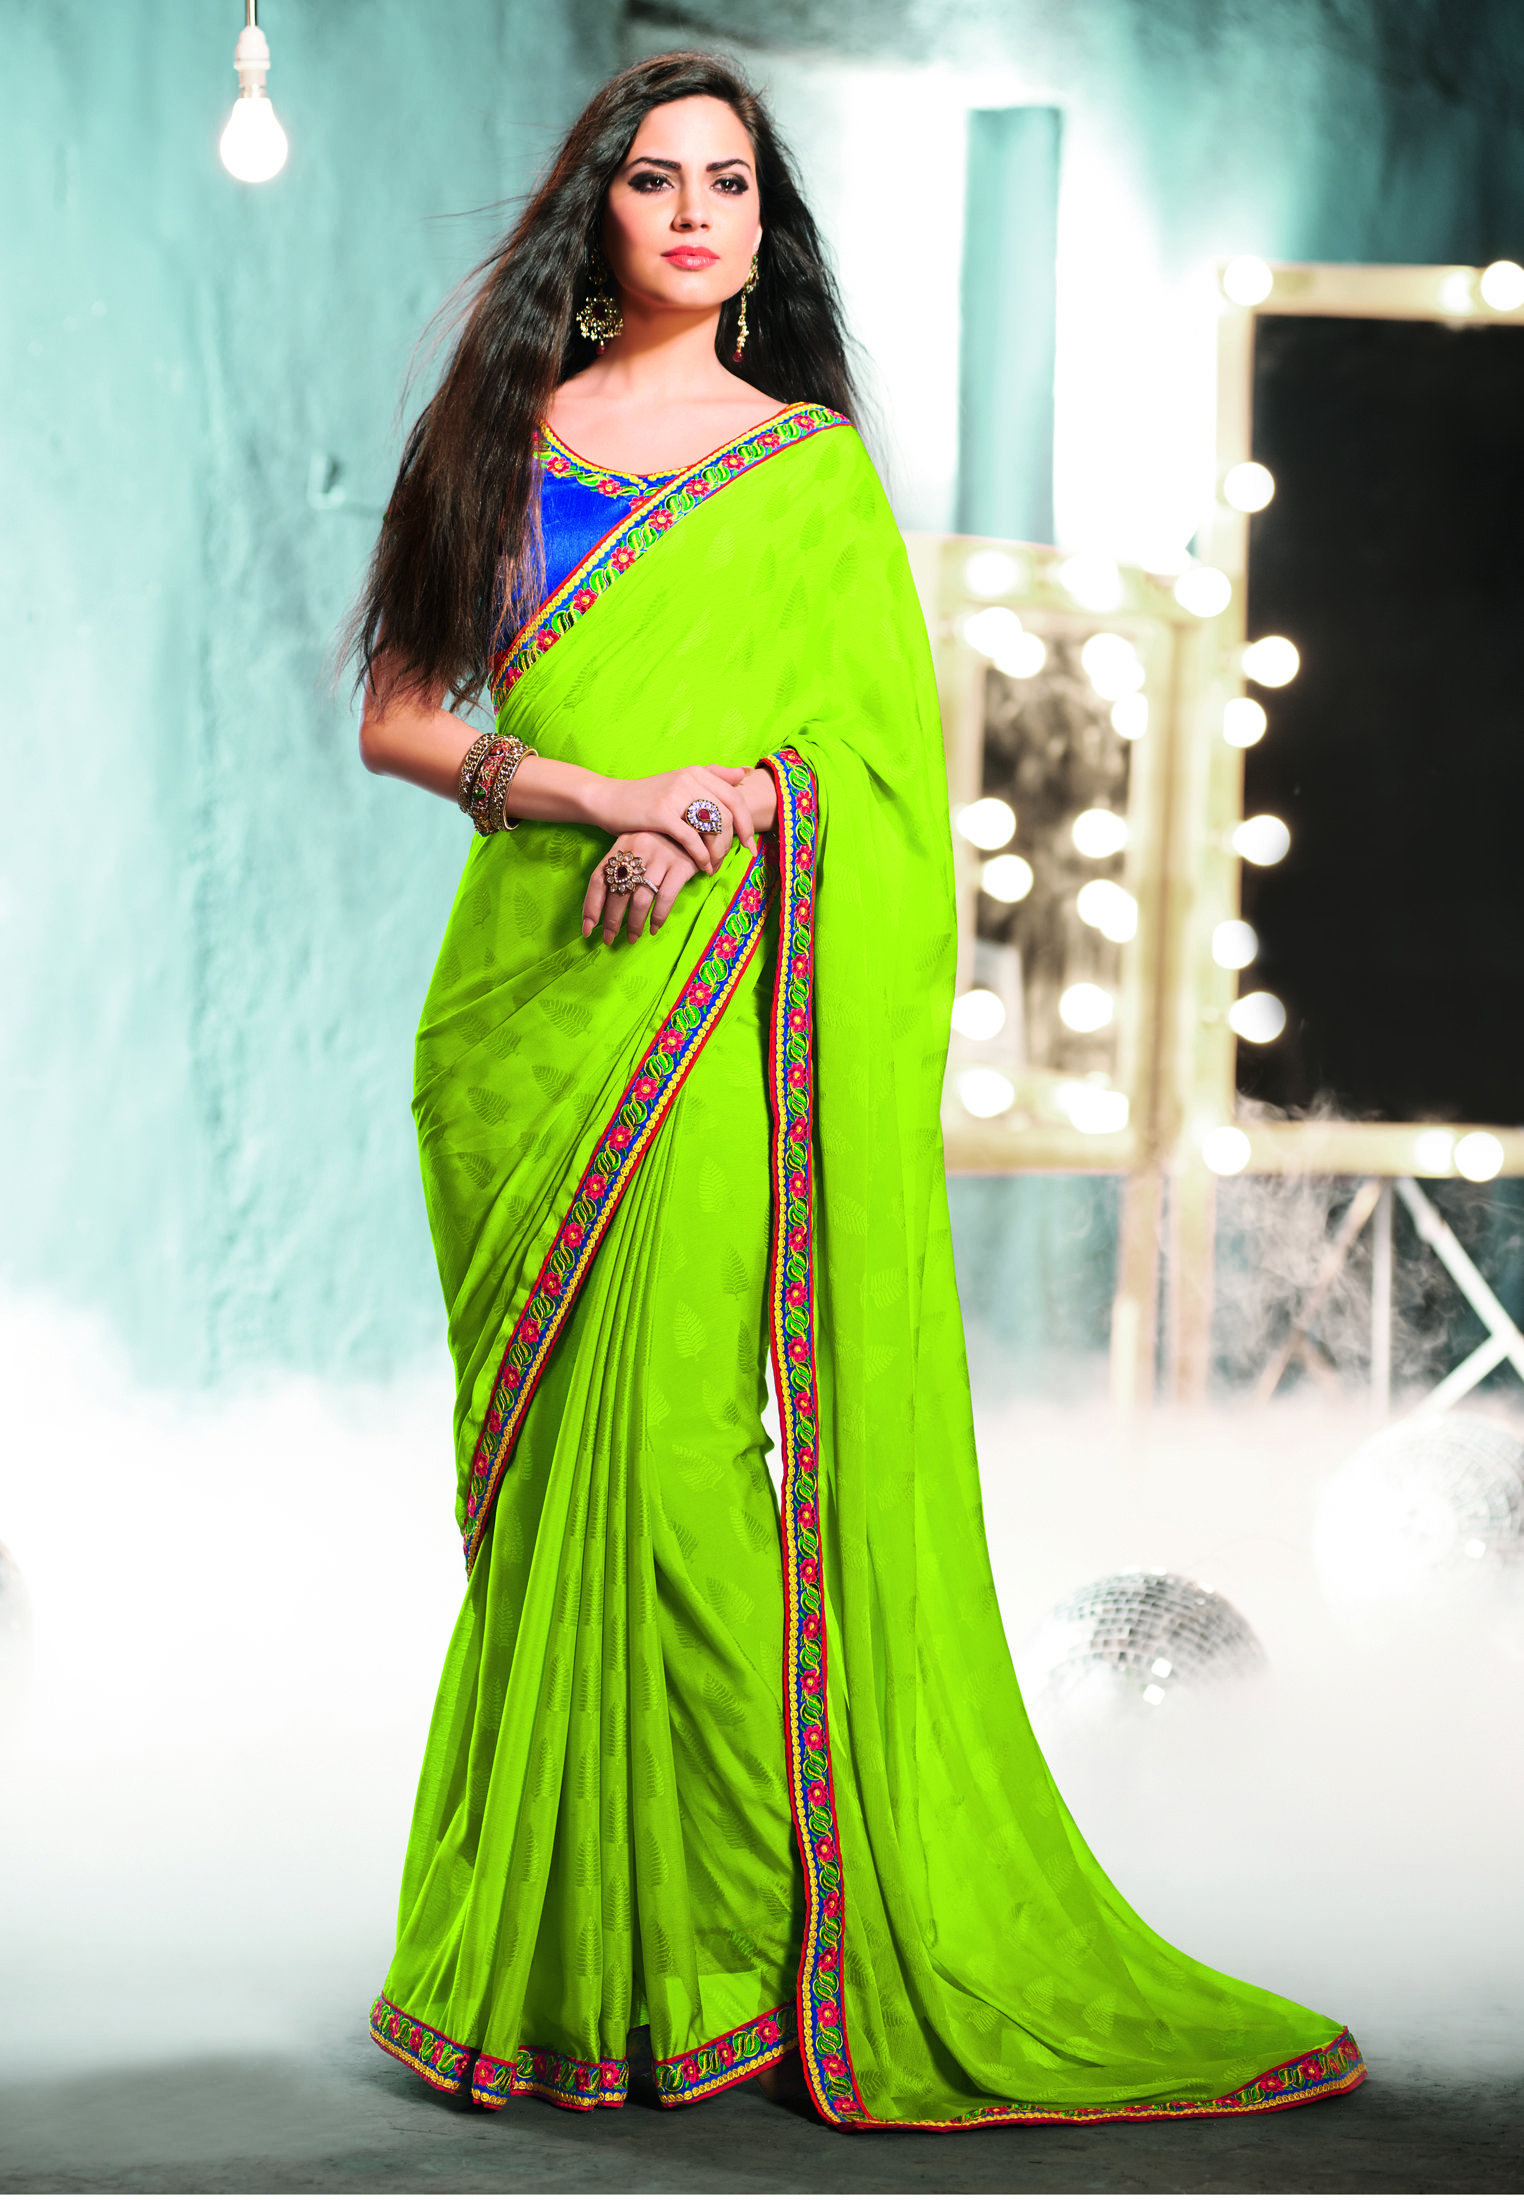 688de51b8fd6b1 parrot green plain with simple traditional border line gives beautiful look  in parties. this #designer #partywearsaree comes with blue simple blouse.